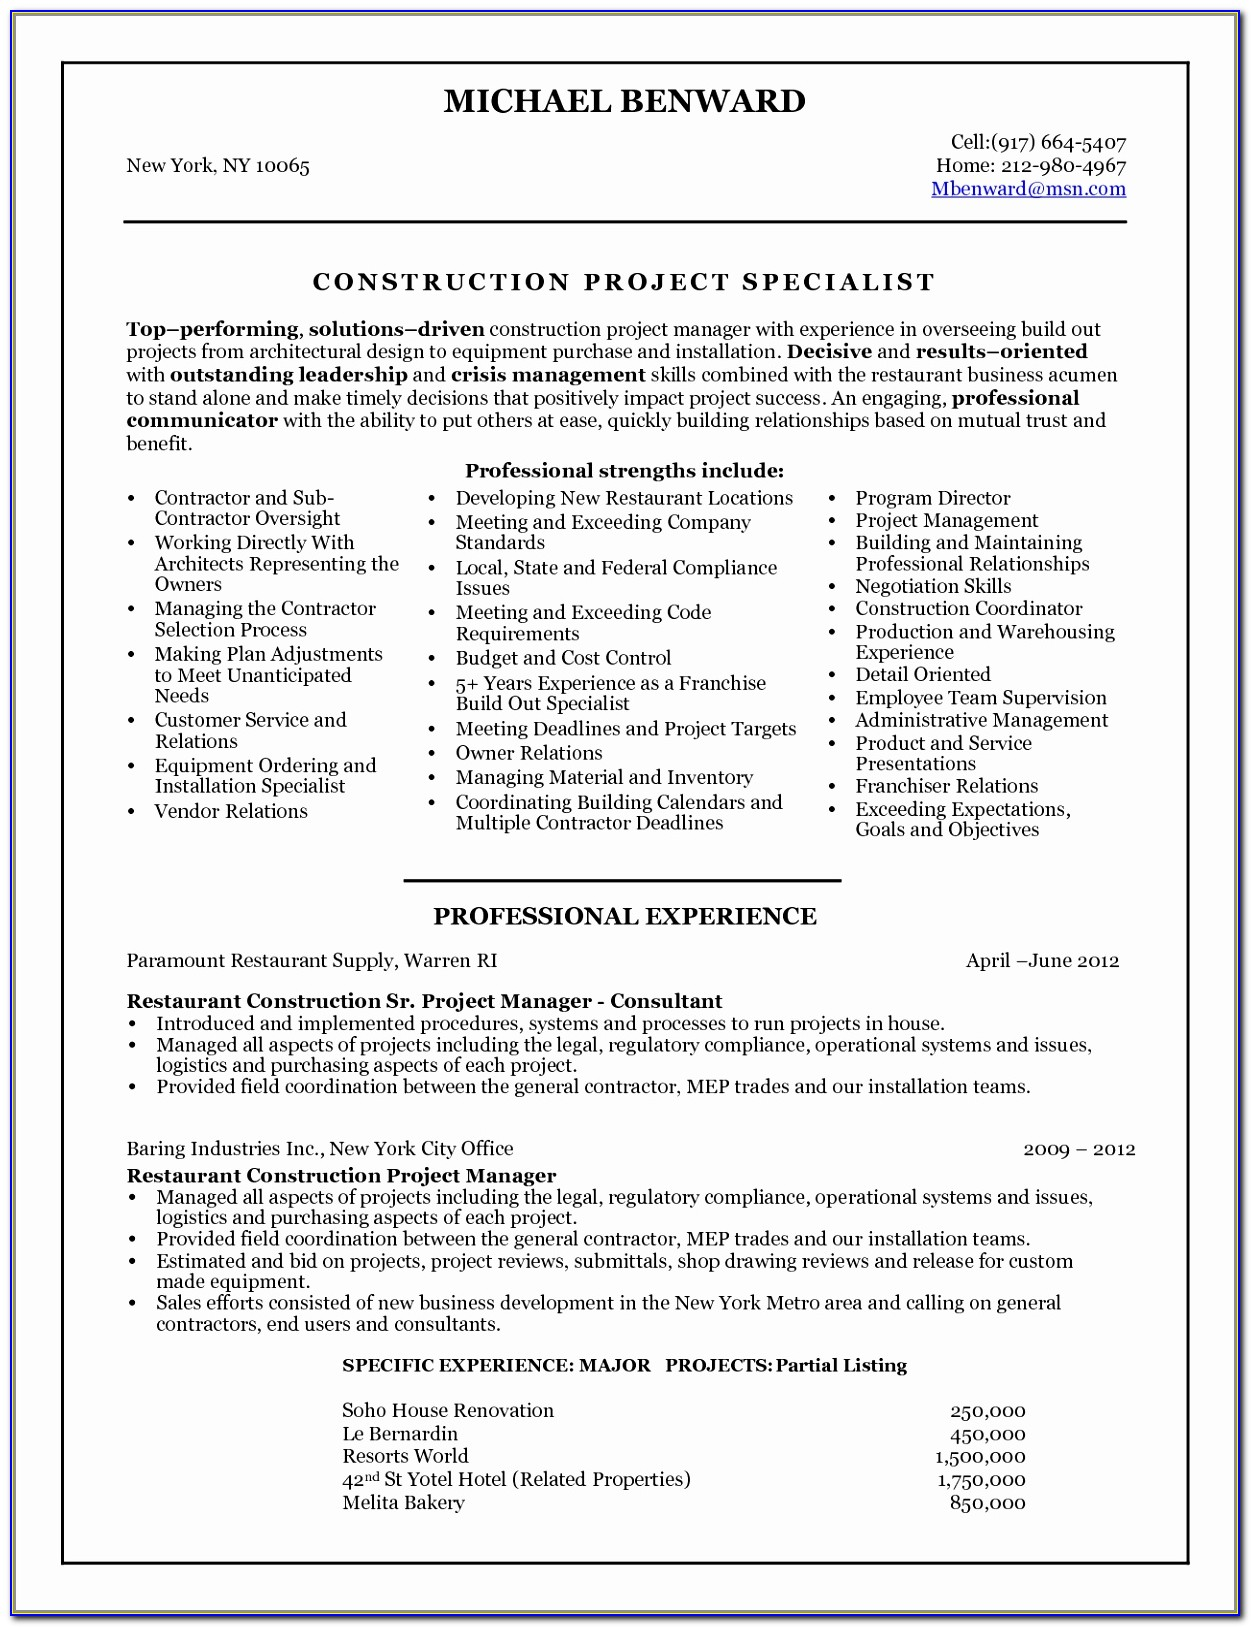 Free Construction Management Resume Templates Free Construction Project Manager Resume Templates Lovely Pdf Word Excel Templates Aoiyp